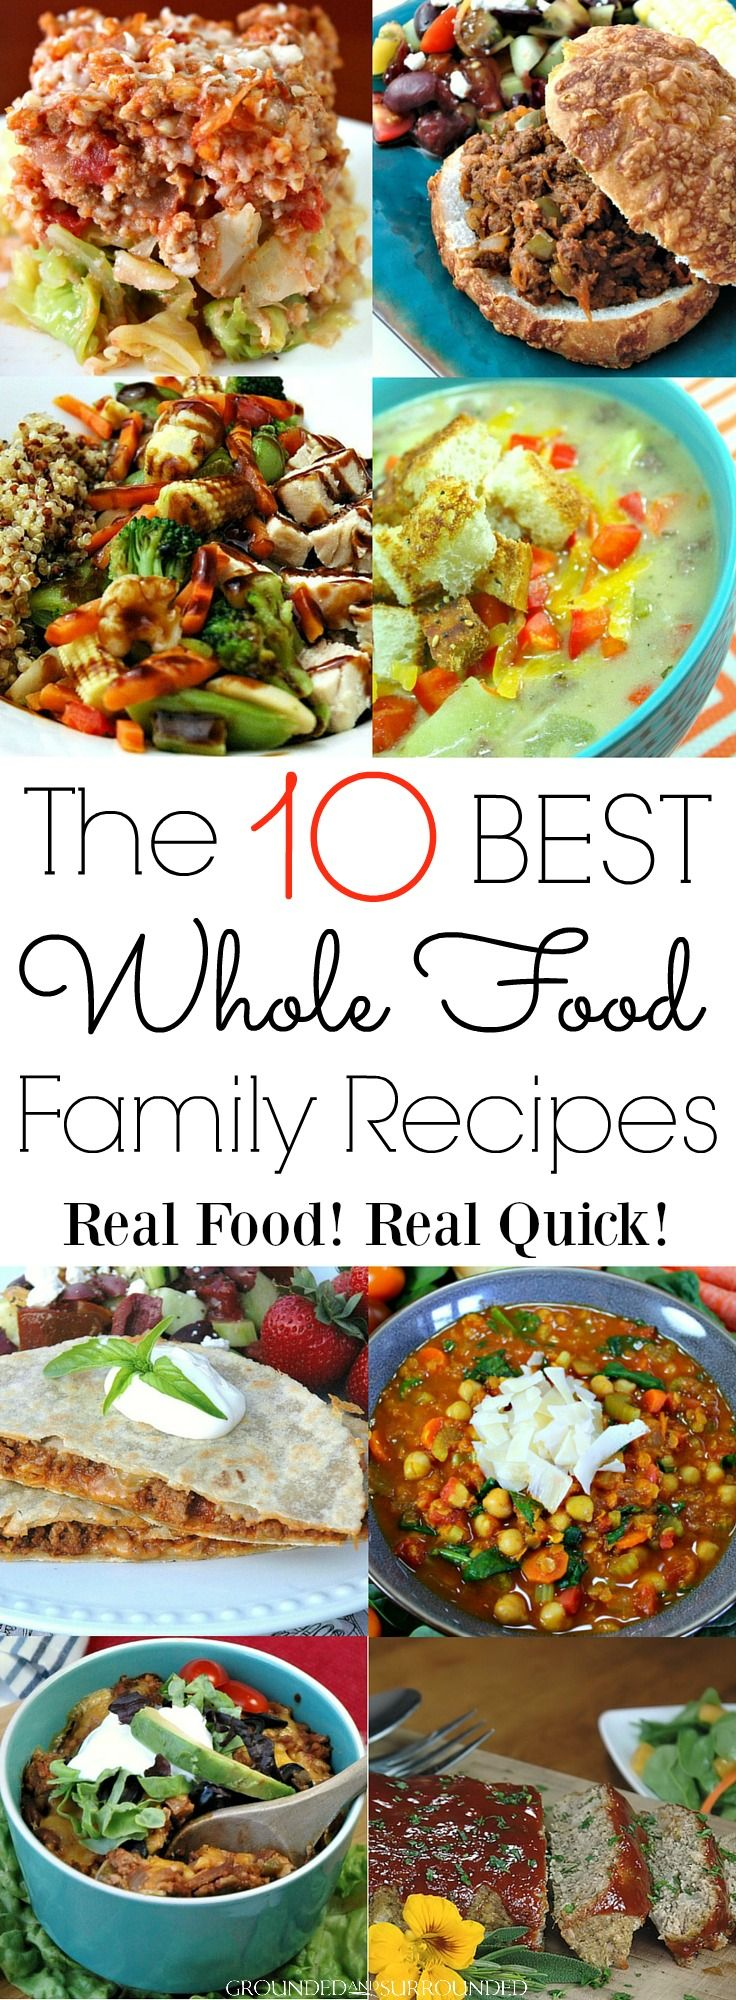 187 best healthy living eating images on pinterest healthy the 10 best whole food family recipes forumfinder Image collections